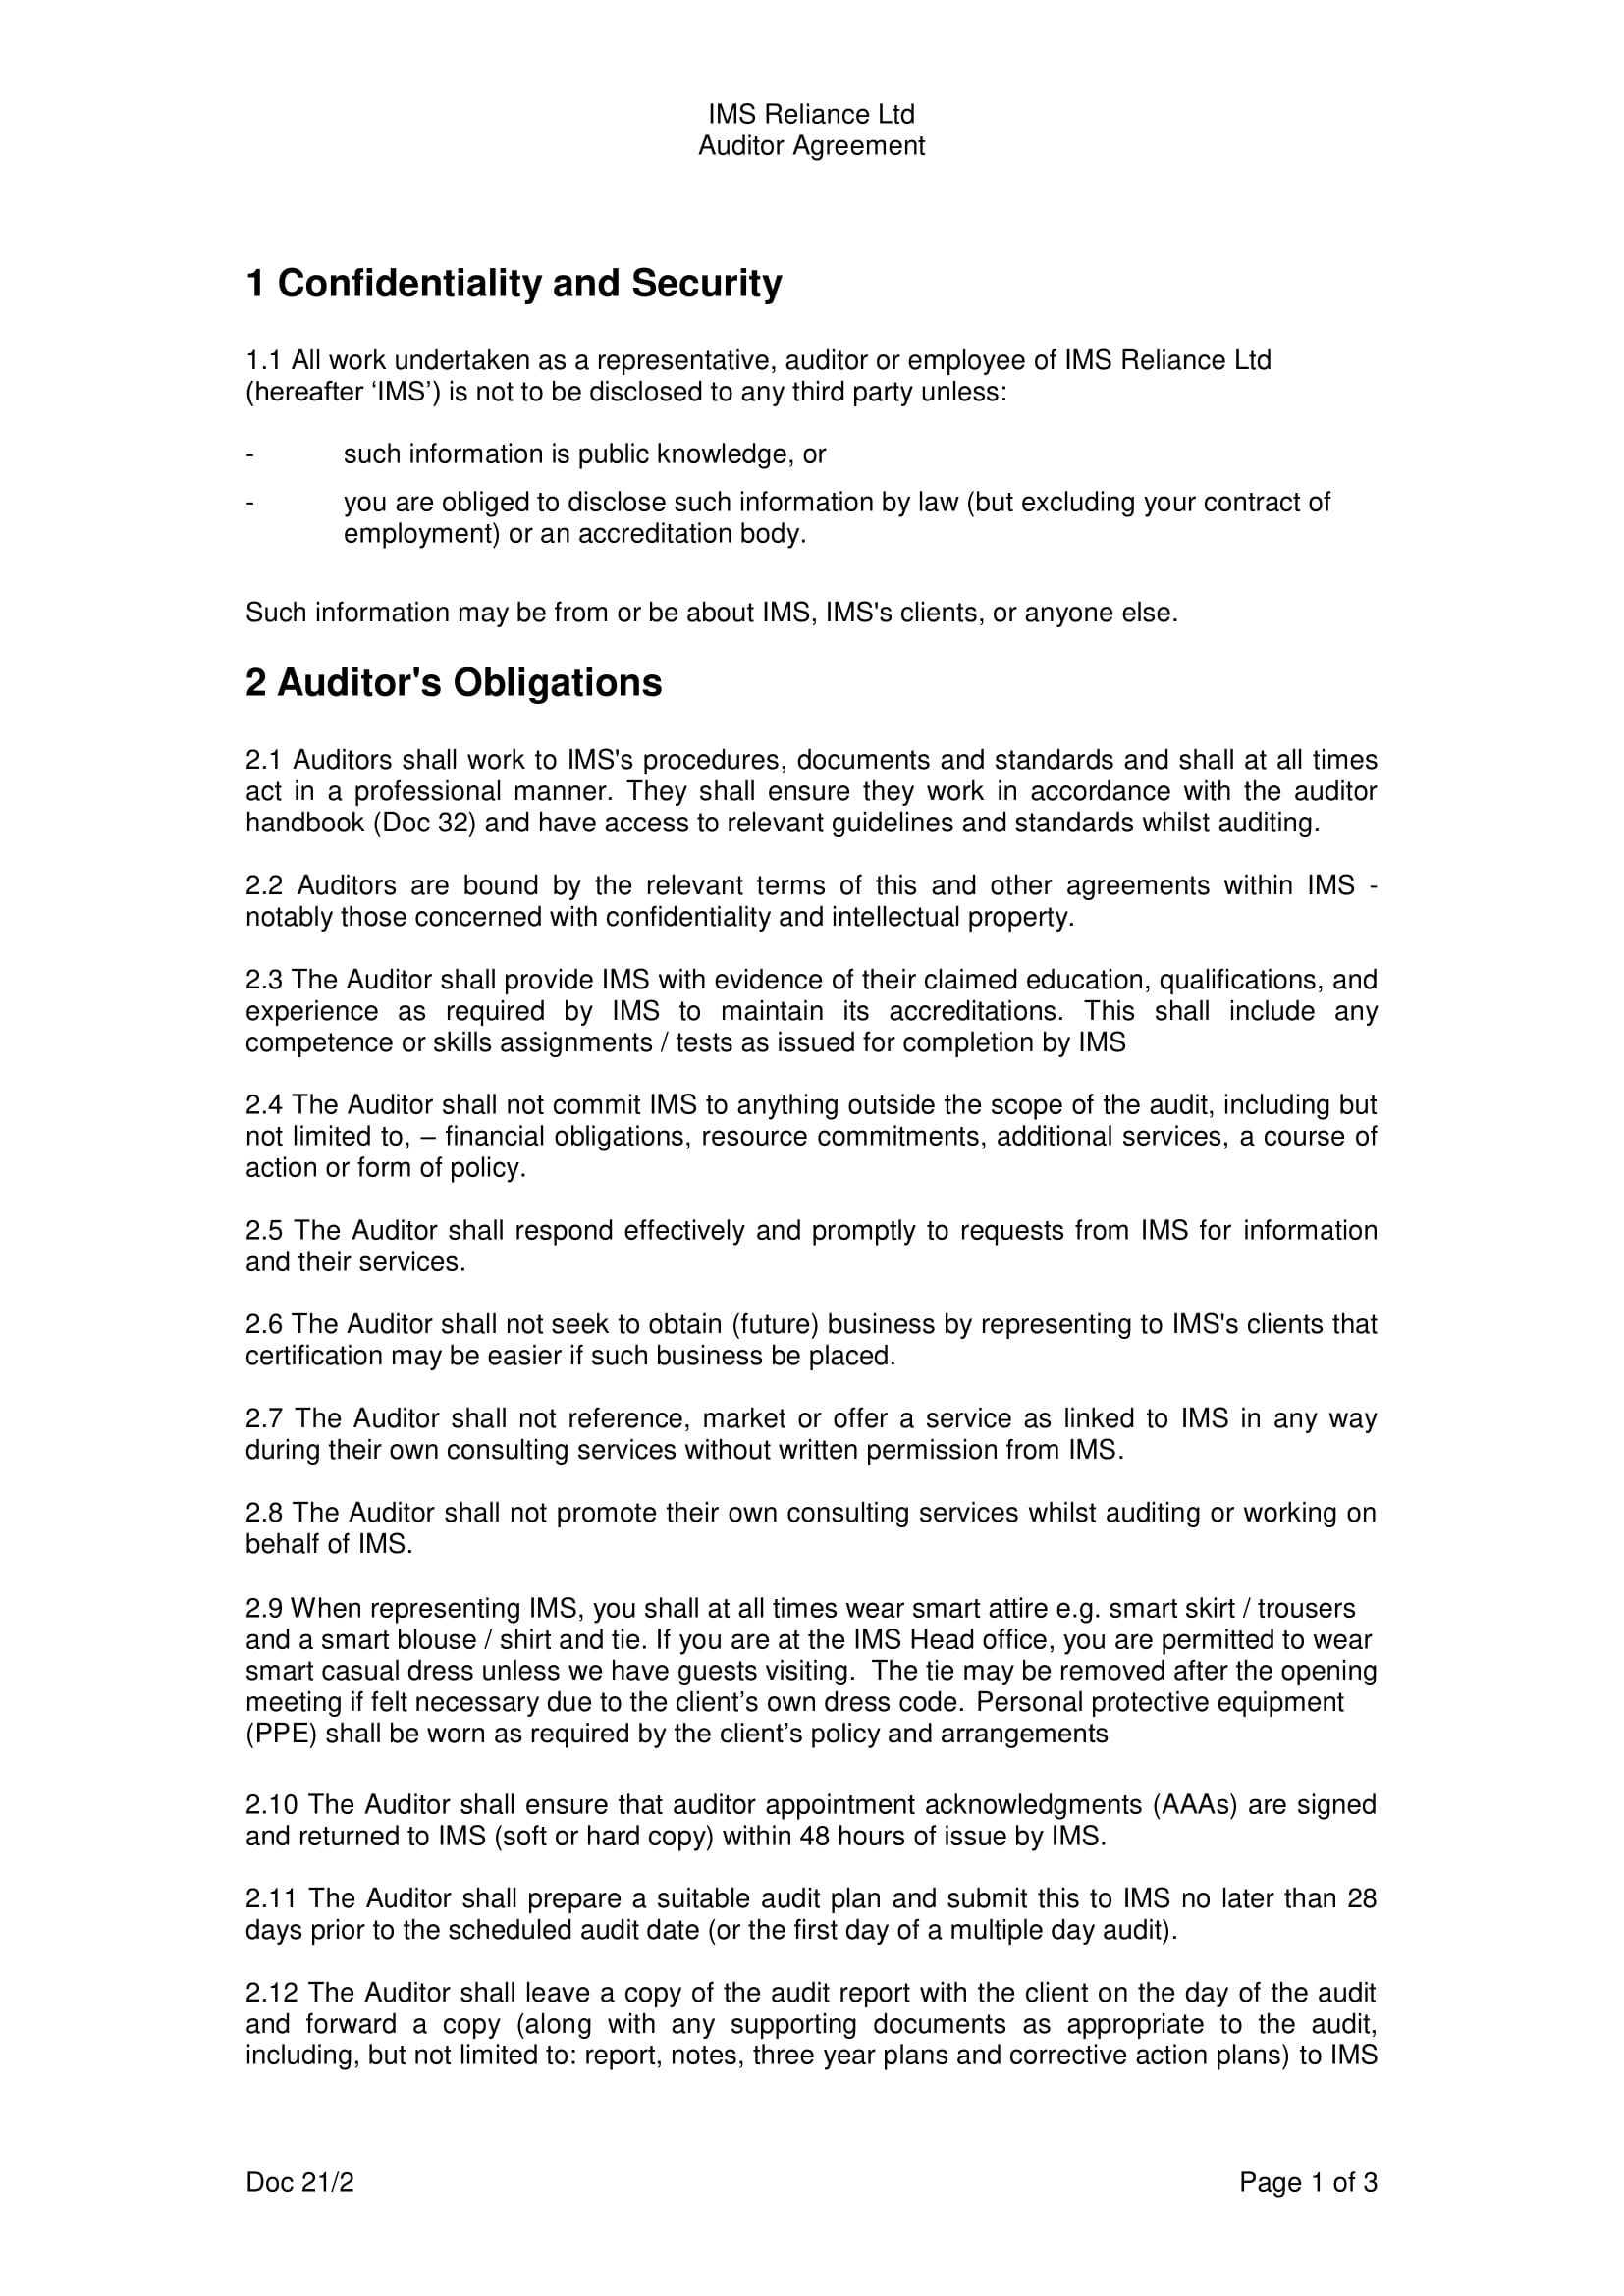 ims reliance audit confidentiality agreement example